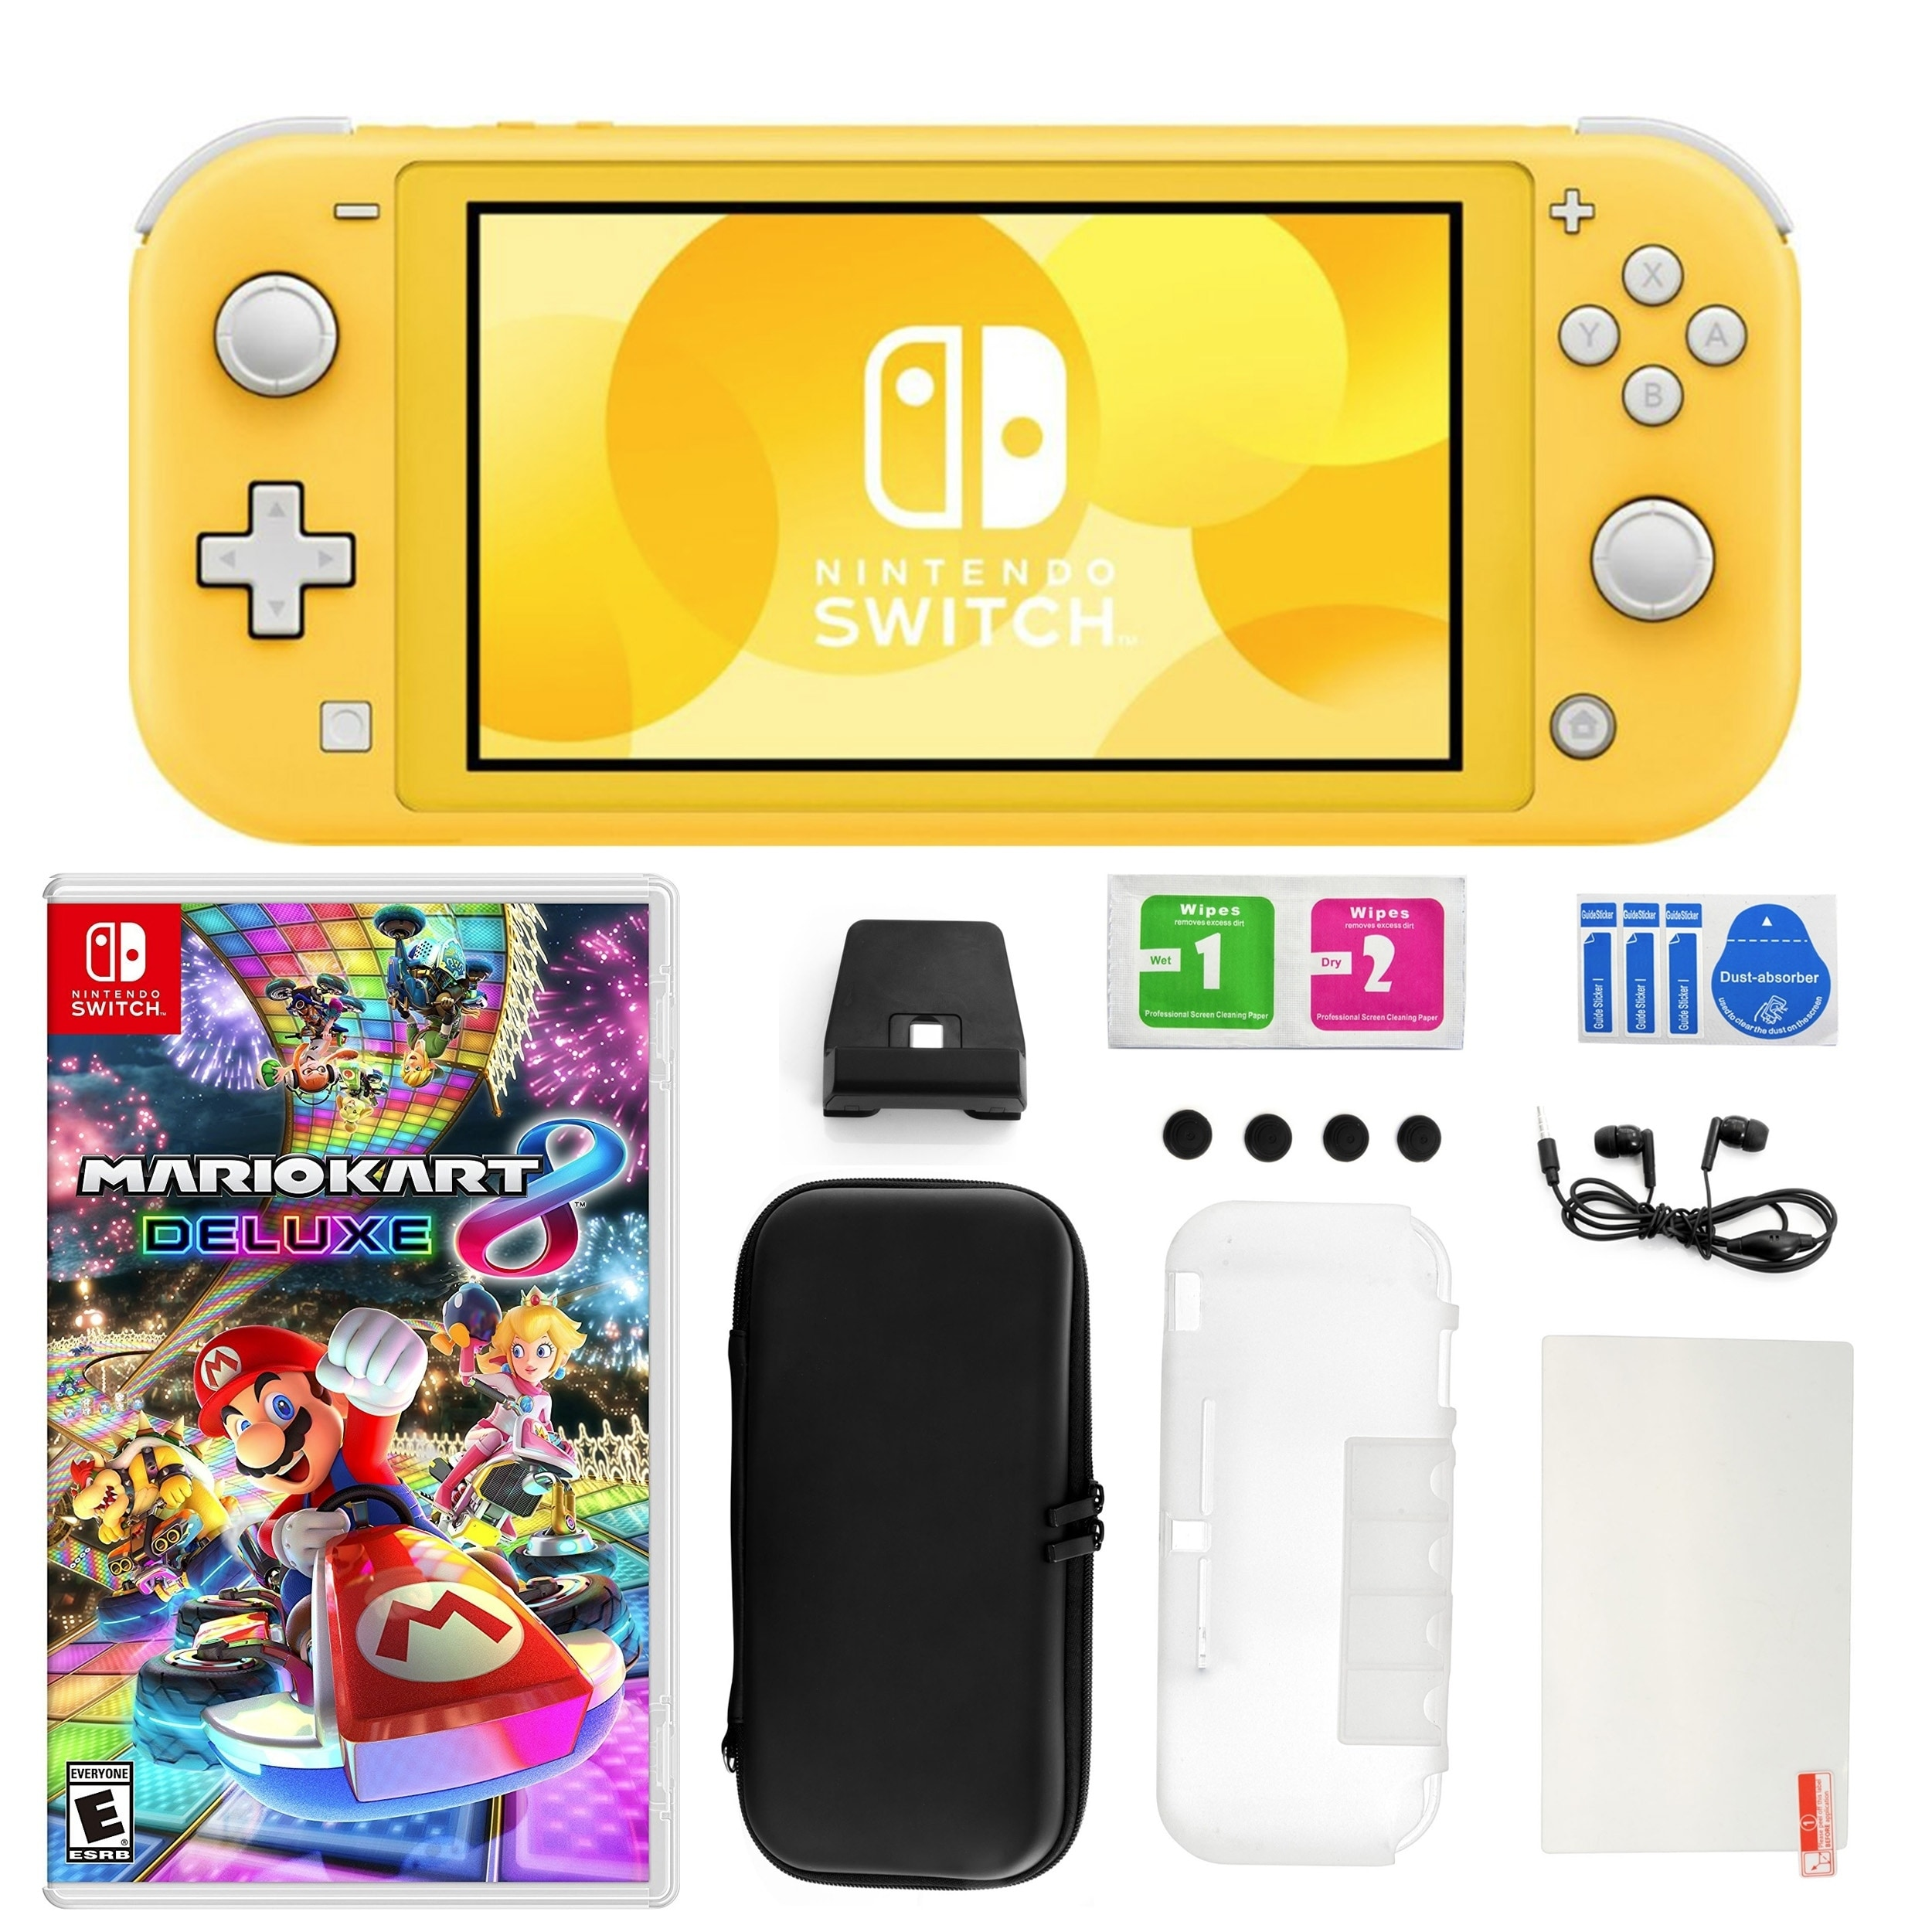 Nintendo Switch Lite Yellow With Mario Kart 8 Deluxe Accessories Kit N A